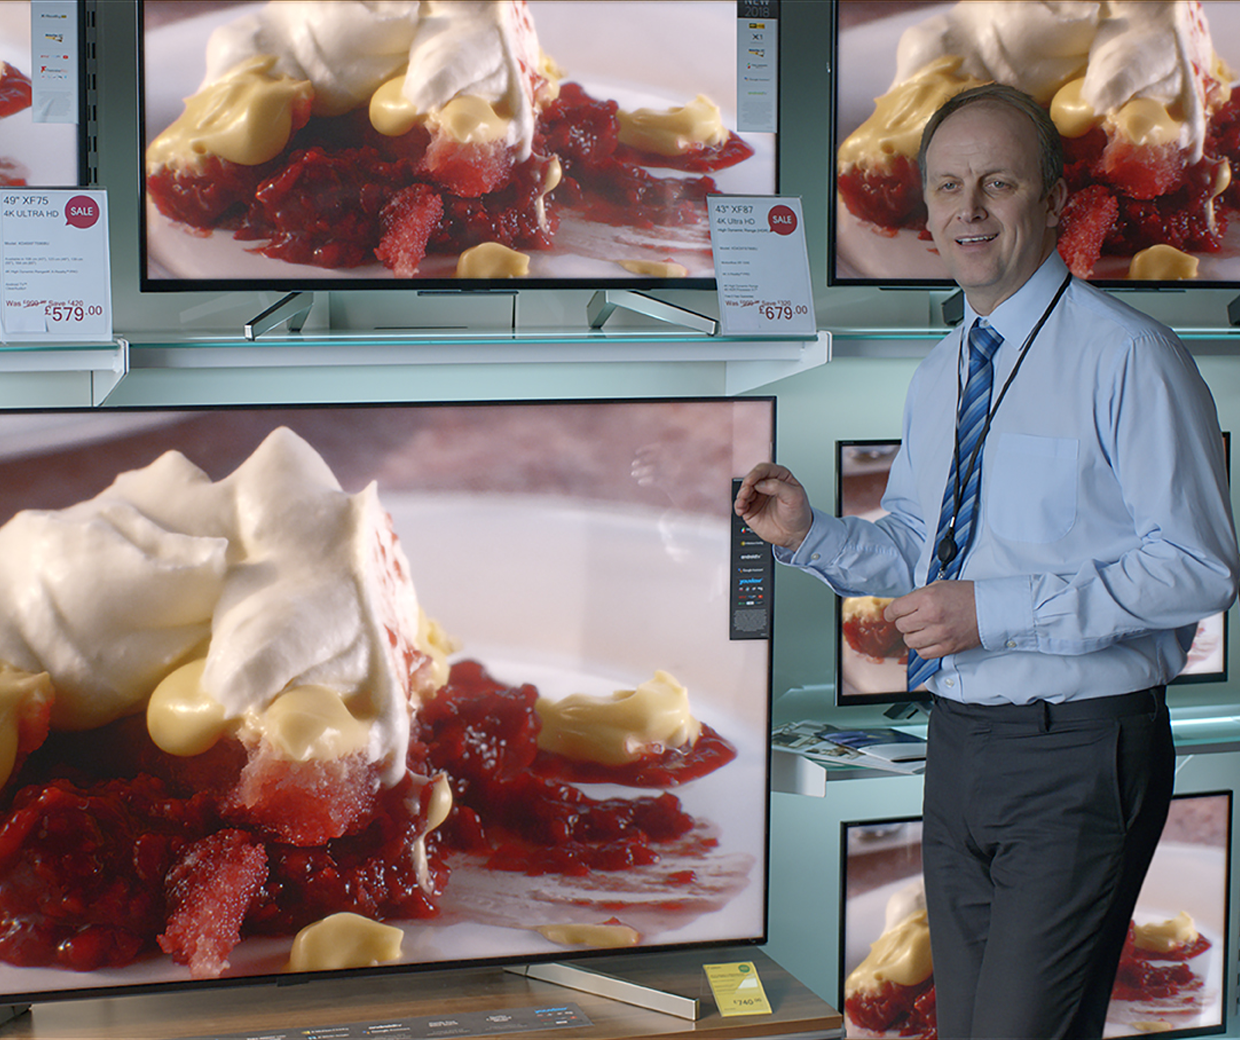 M&S 'This is not just food' campaign trifle